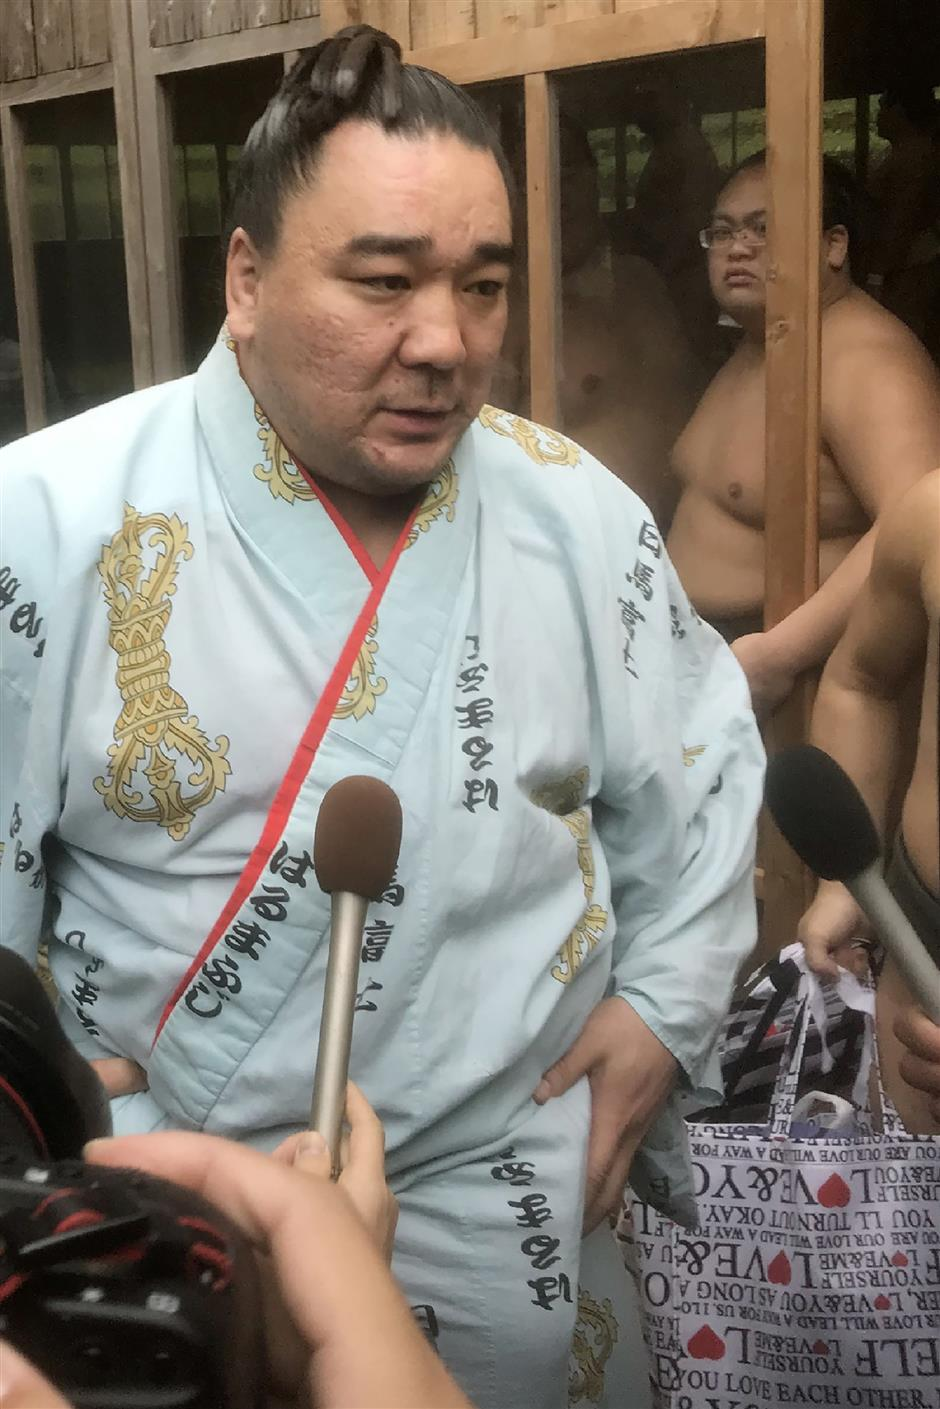 Sumo champ investigated over alleged assault